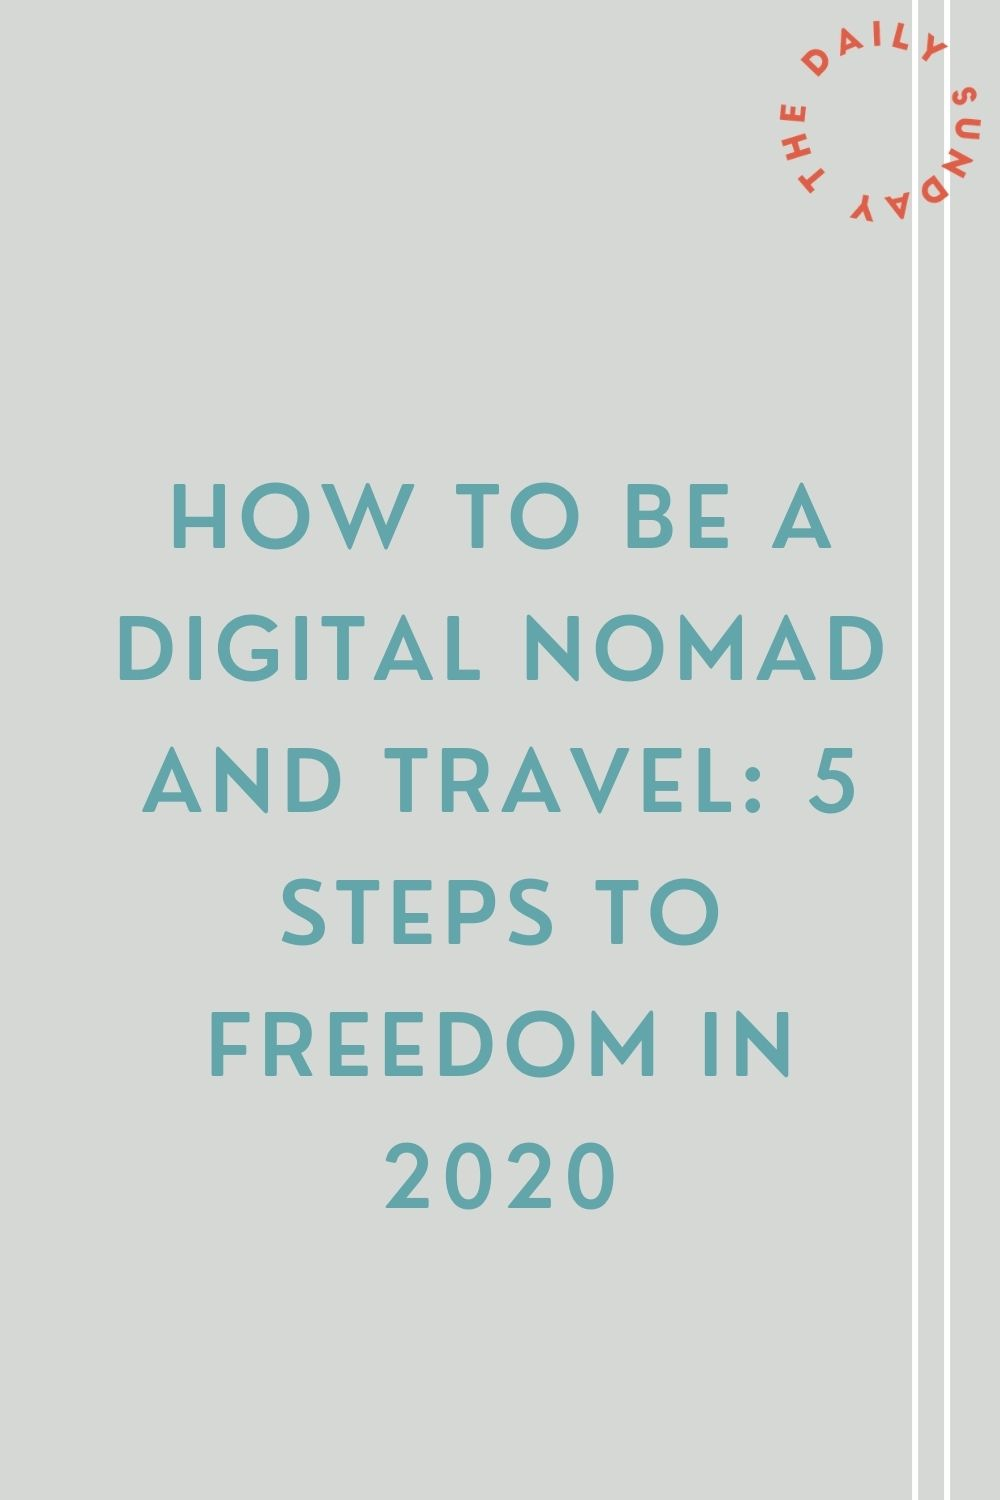 How to Be a Digital Nomad and Travel: 5 Steps to Freedom in 2020